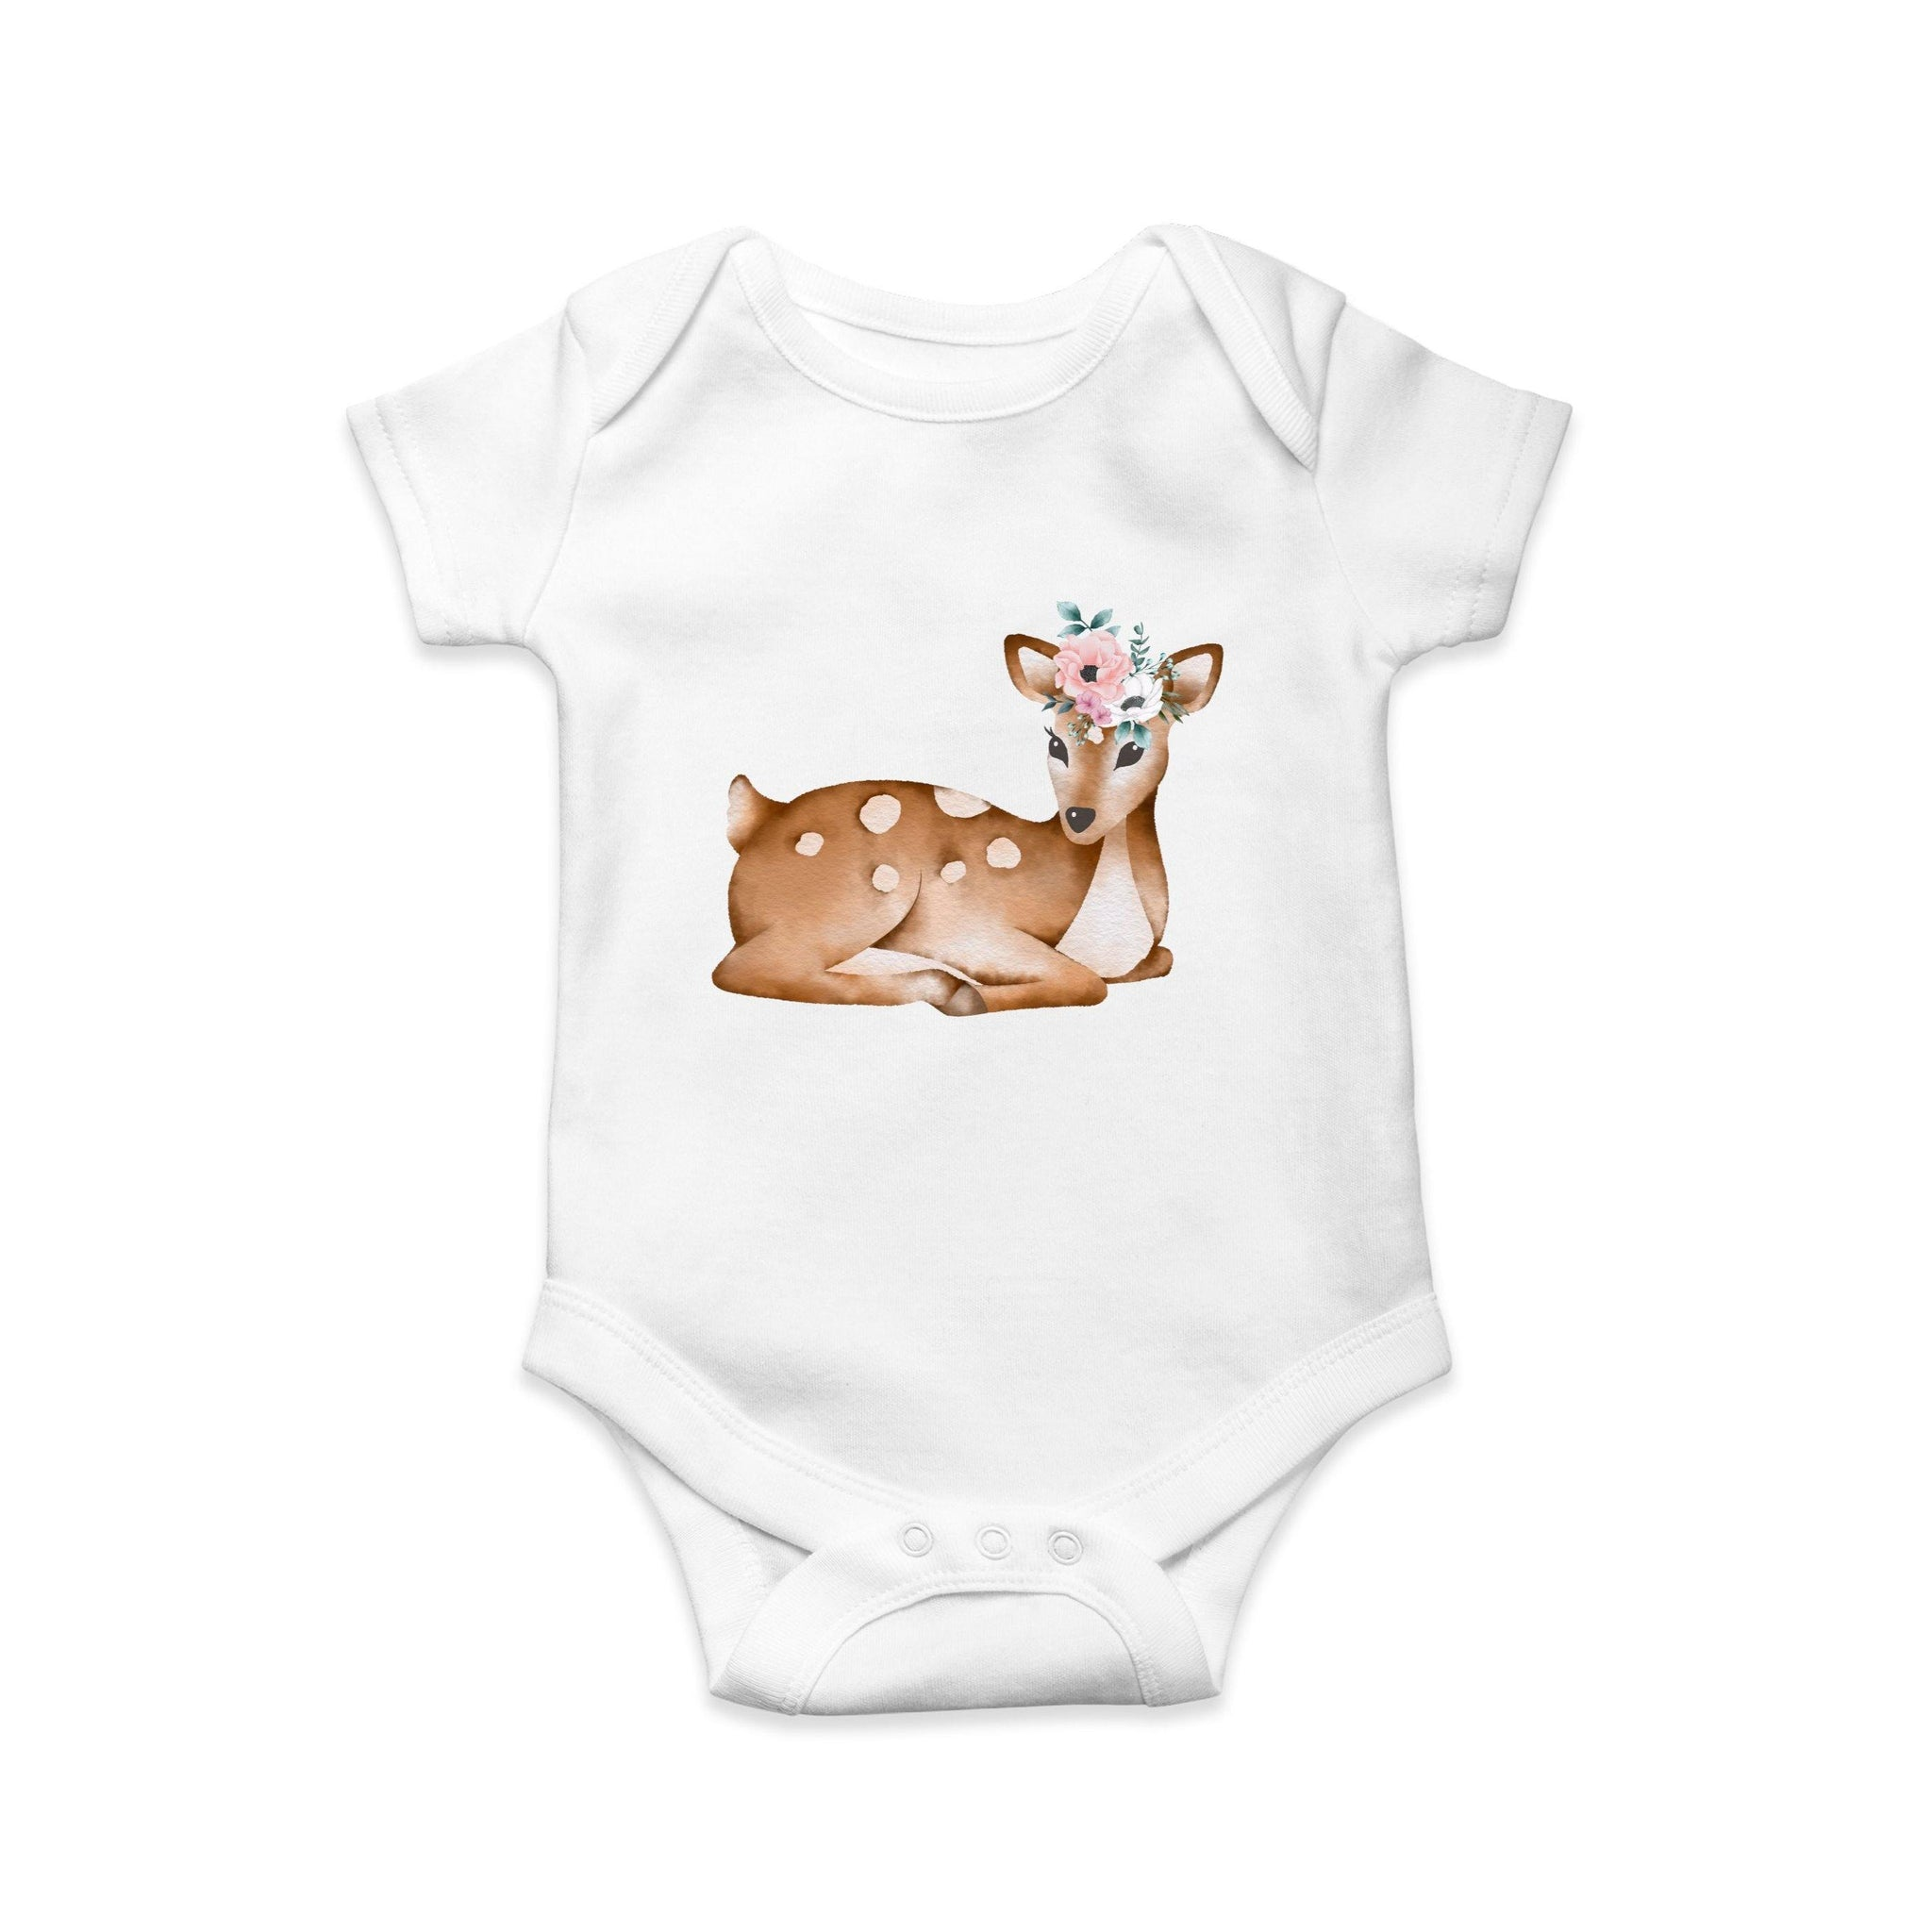 Laying deer and flower baby body suit - Sew Tilley